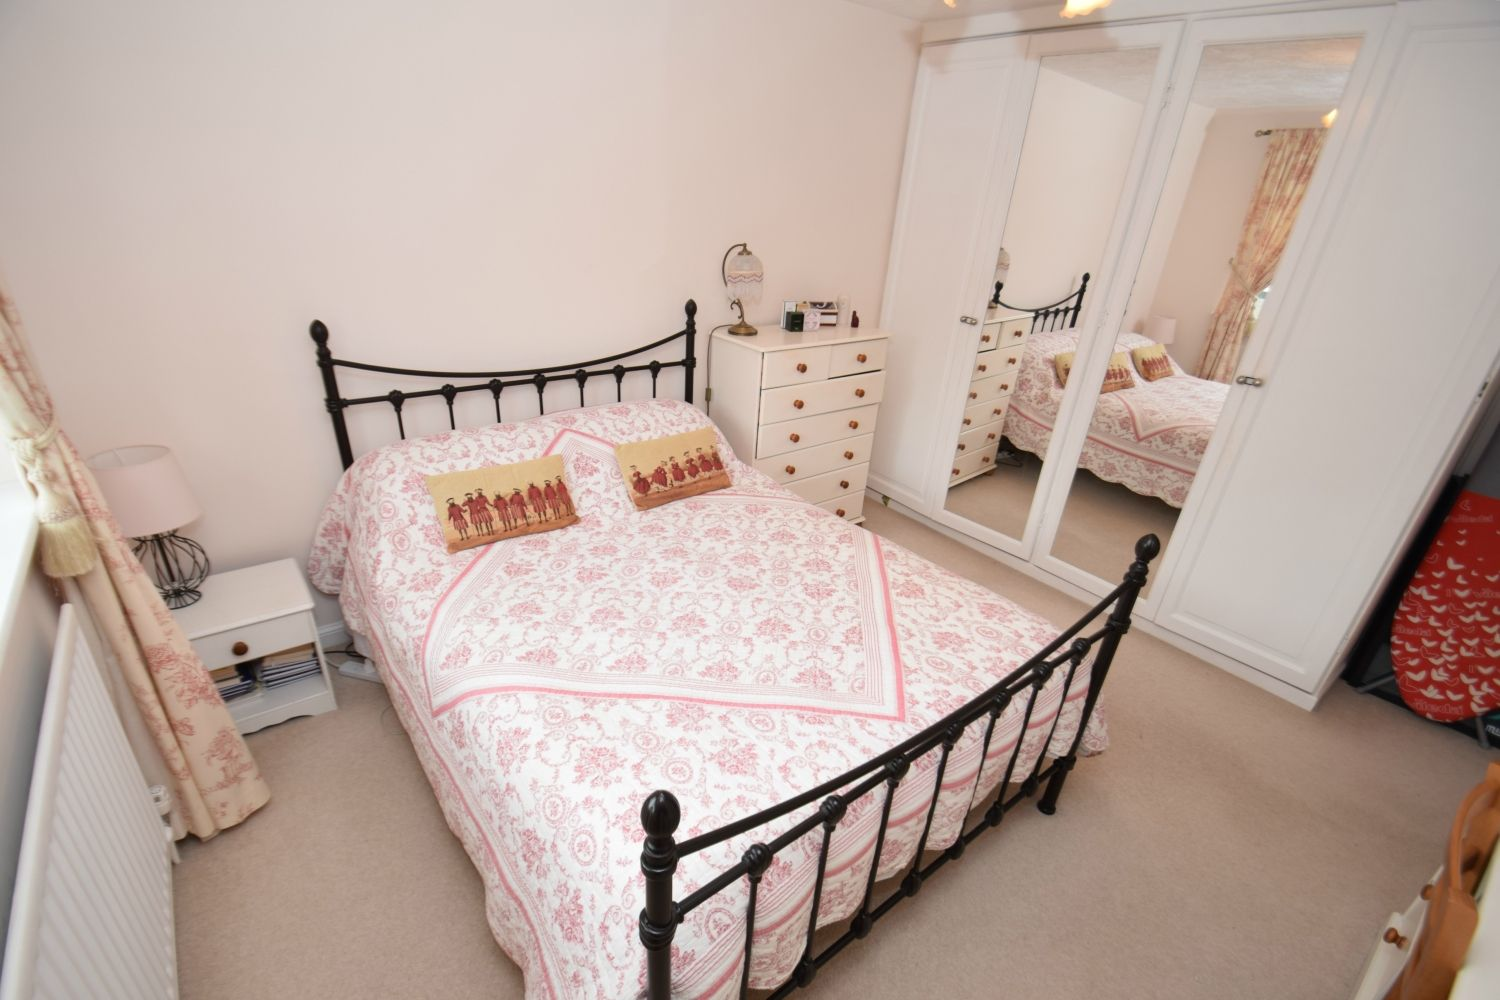 3 bed detached for sale in Foxes Close, Blackwell, B60  - Property Image 13